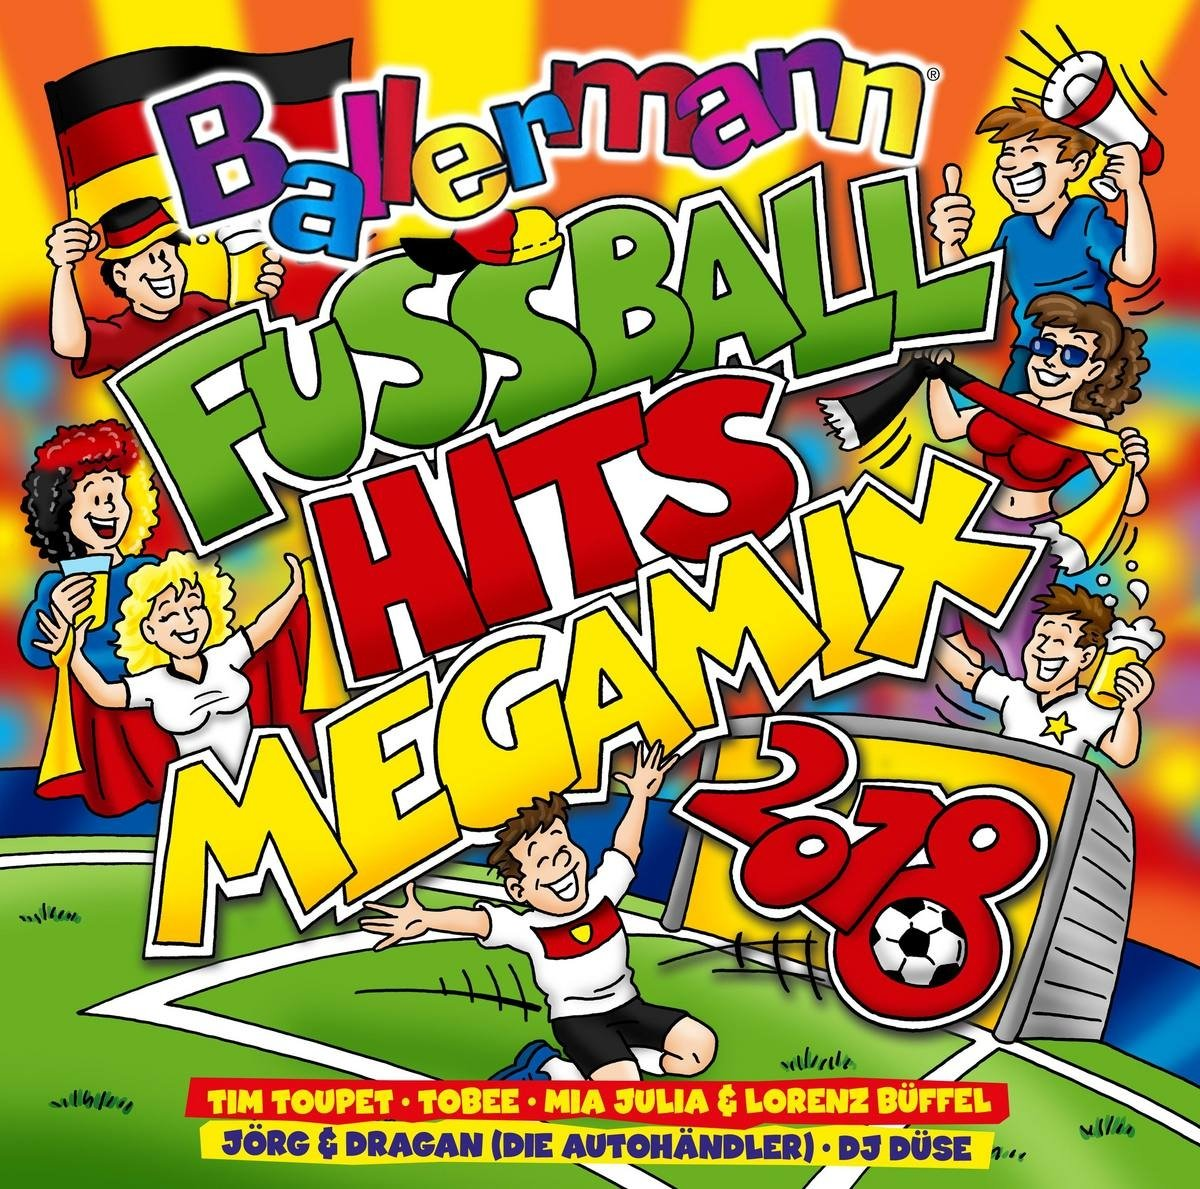 VA-Ballermann Fussball Hits Megamix 2018-DE-2CD-FLAC-2018-VOLDiES Download